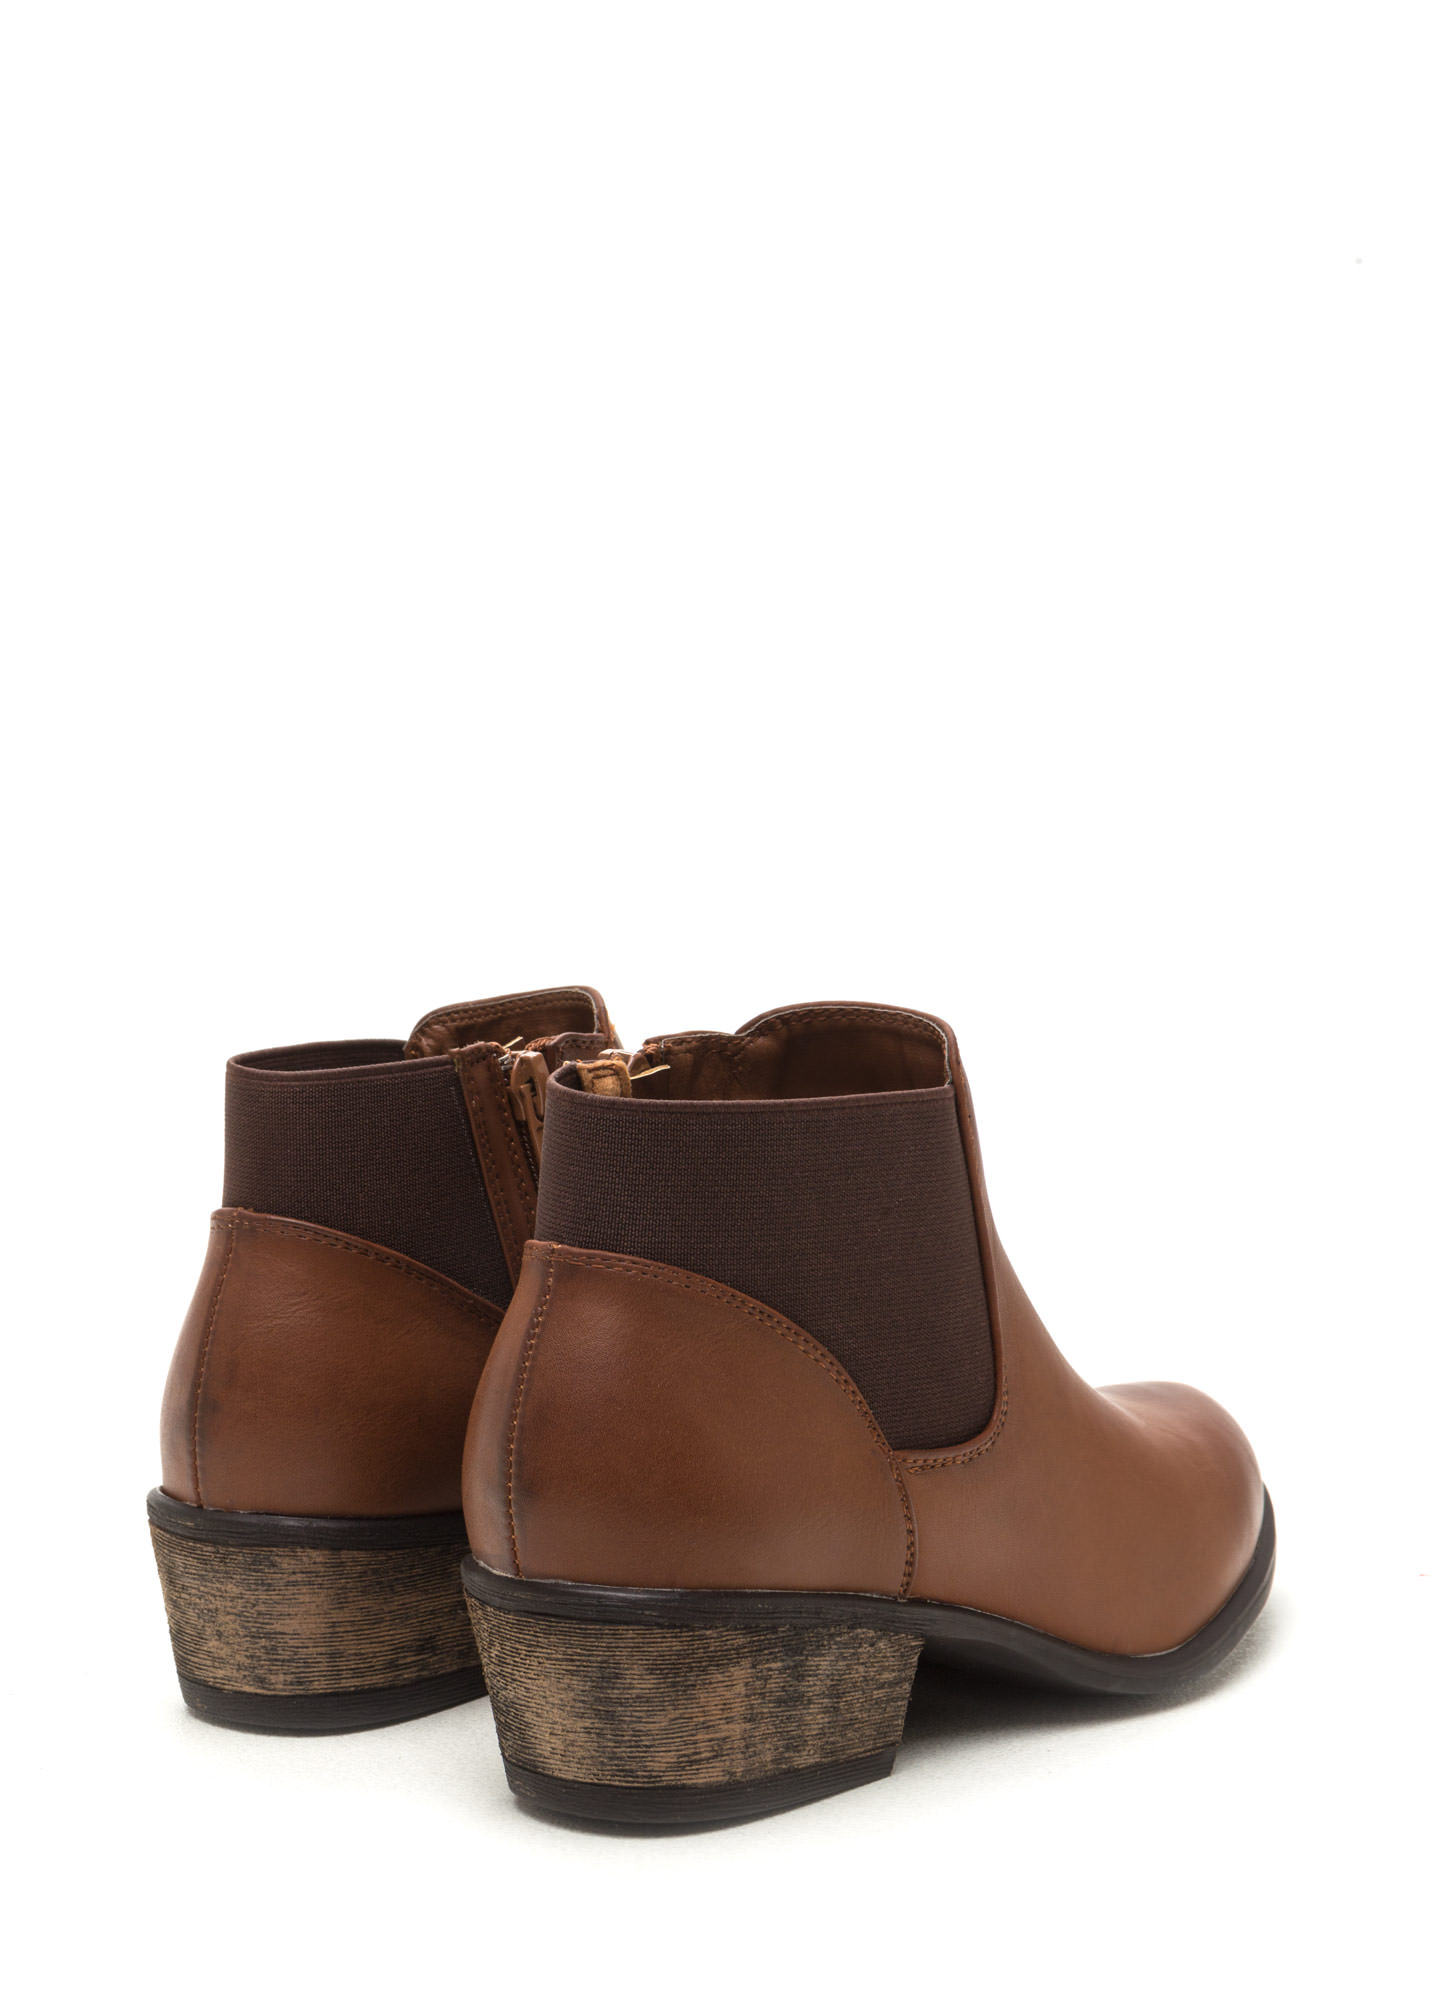 Polished Chunky Faux Leather Booties CHESTNUT